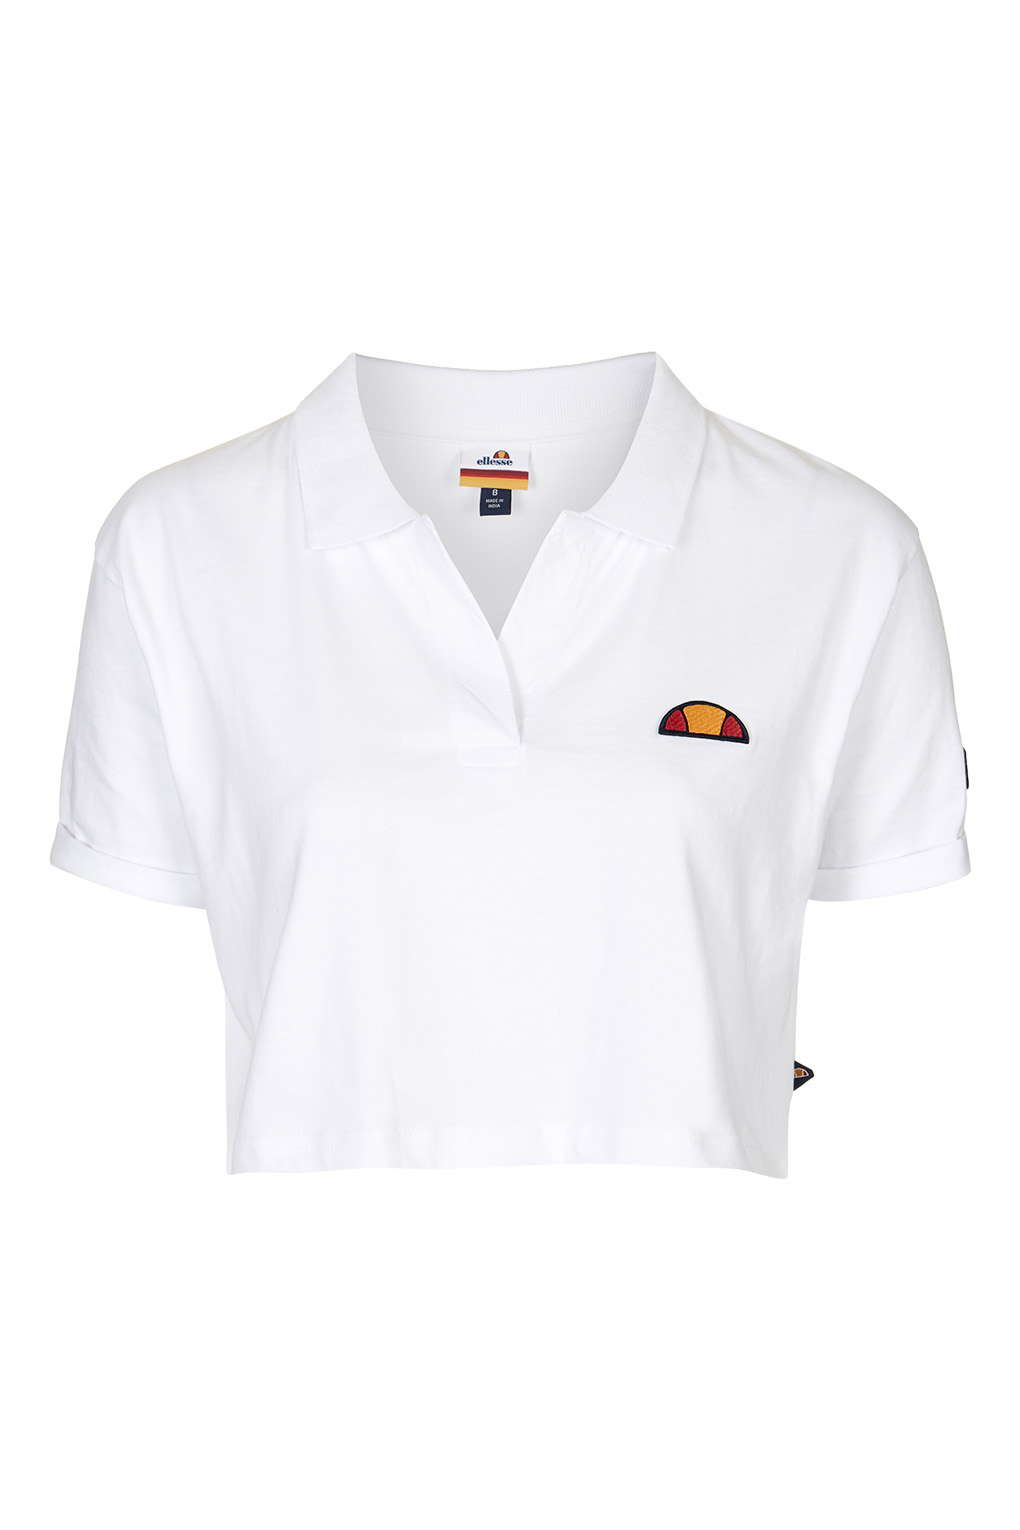 Topshop Cropped Polo Tee By Ellesse in White | Lyst